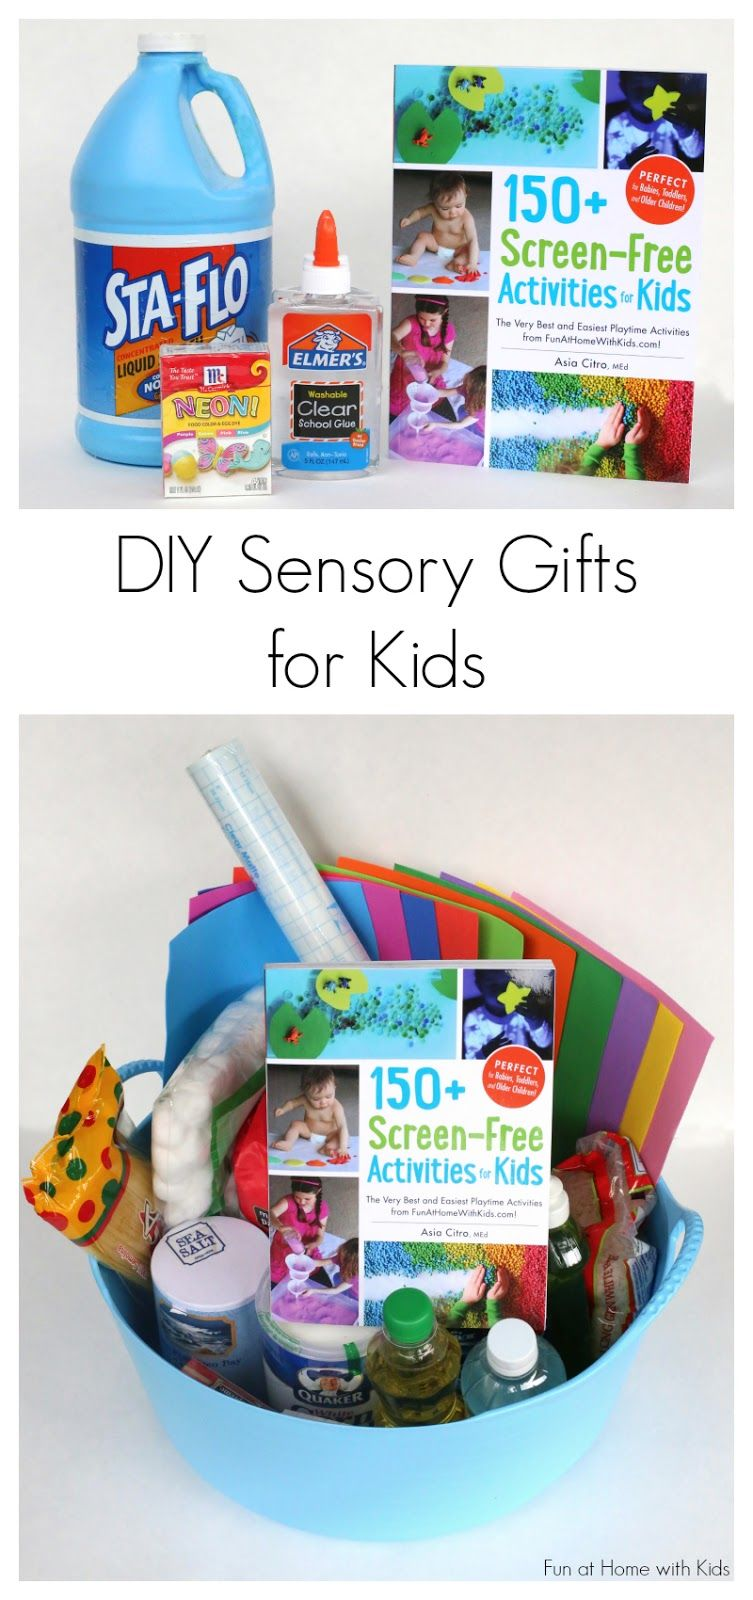 DIY Sensory Kits: Creative Gifts for Kids | FUN AT HOME WITH KIDS ...